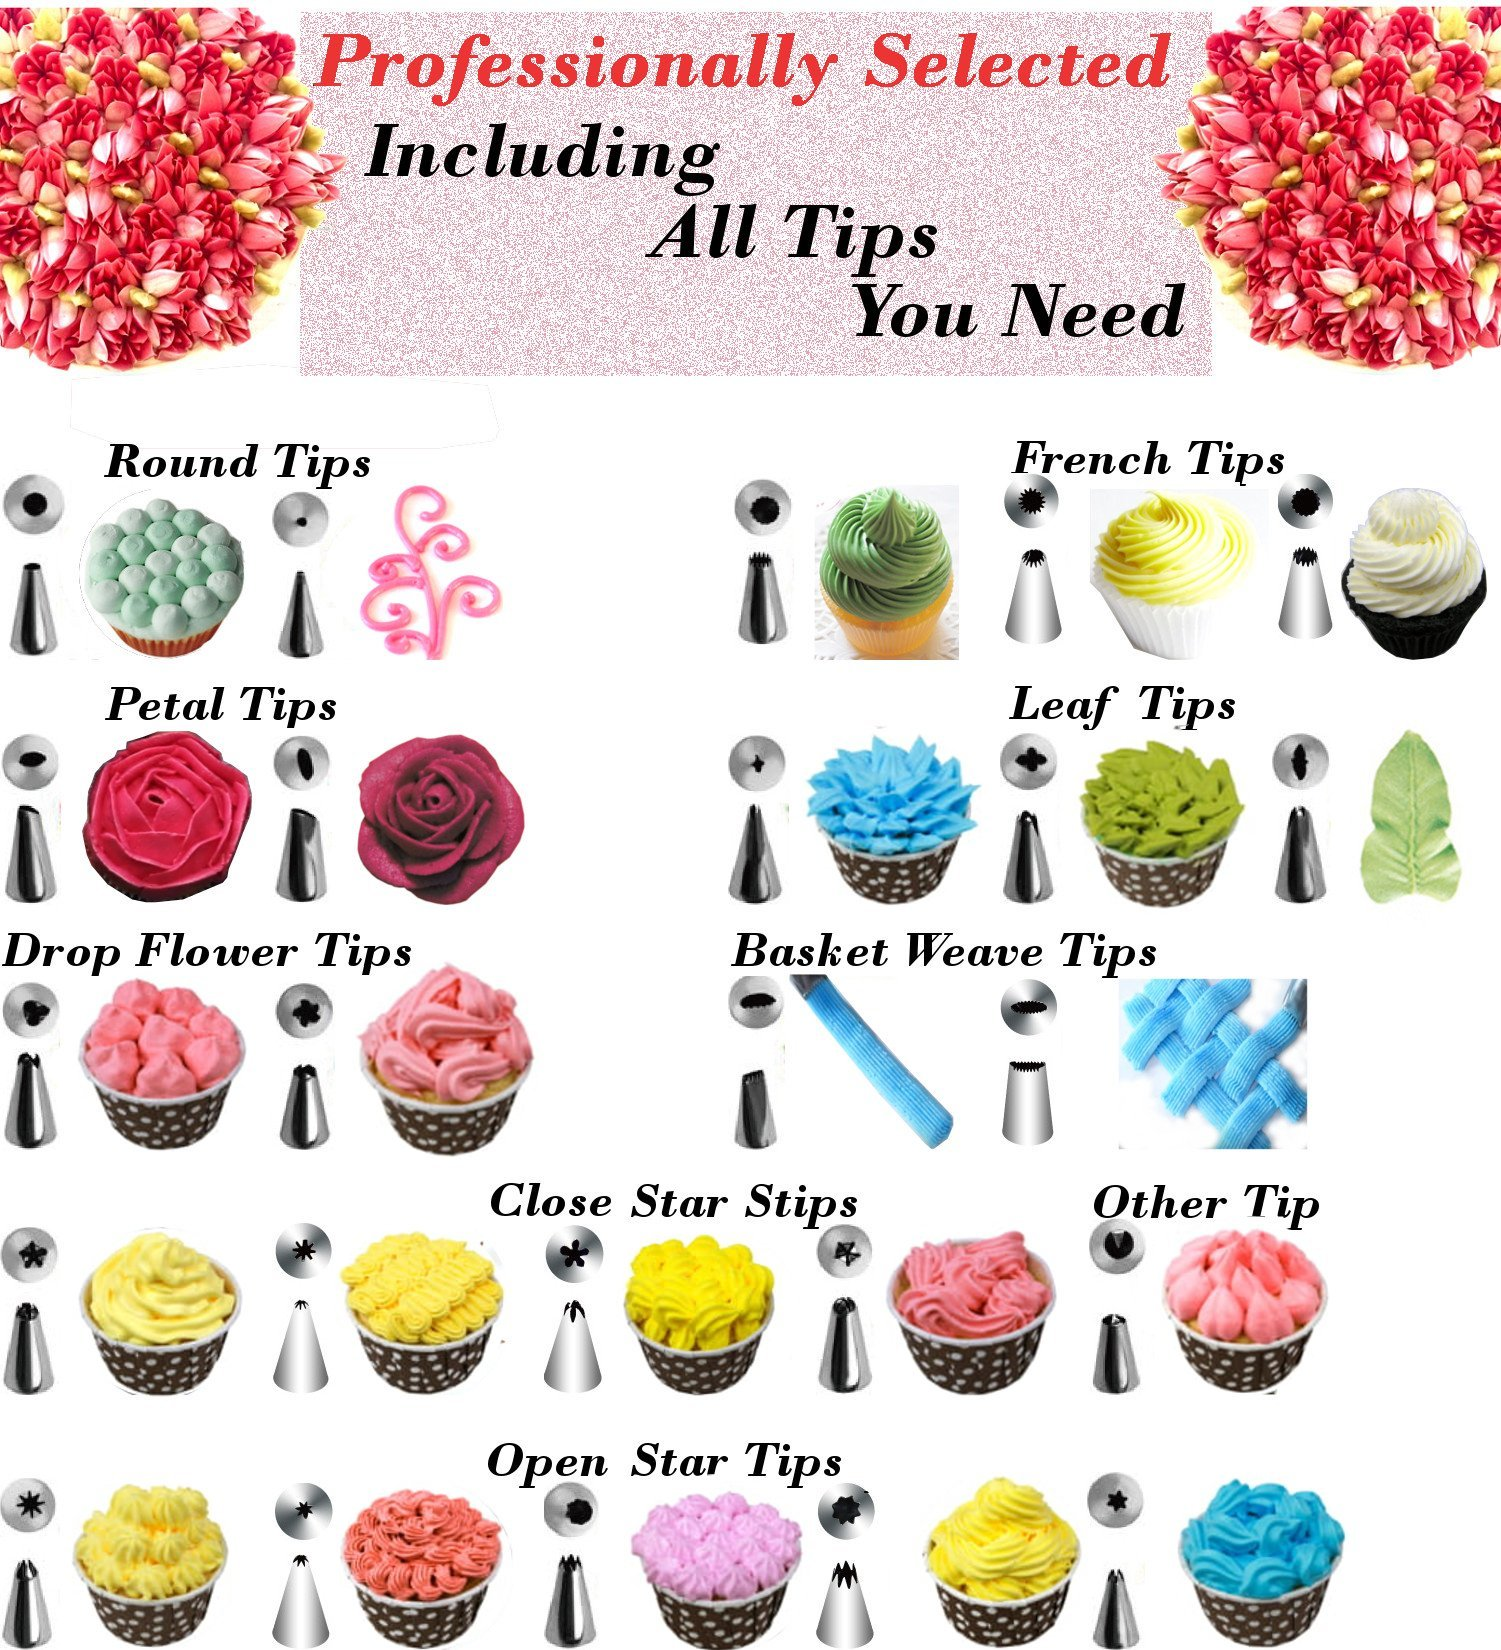 73 pcs Cake Decorating Supplies Kit for Beginners-1 Turntable stand-24 Numbered Easy to use icing tips with pattern chart and E.Book-1 Cake Leveler-Straight and Angled Spatula-3 Russian Piping nozzles by RFAQK (Image #3)